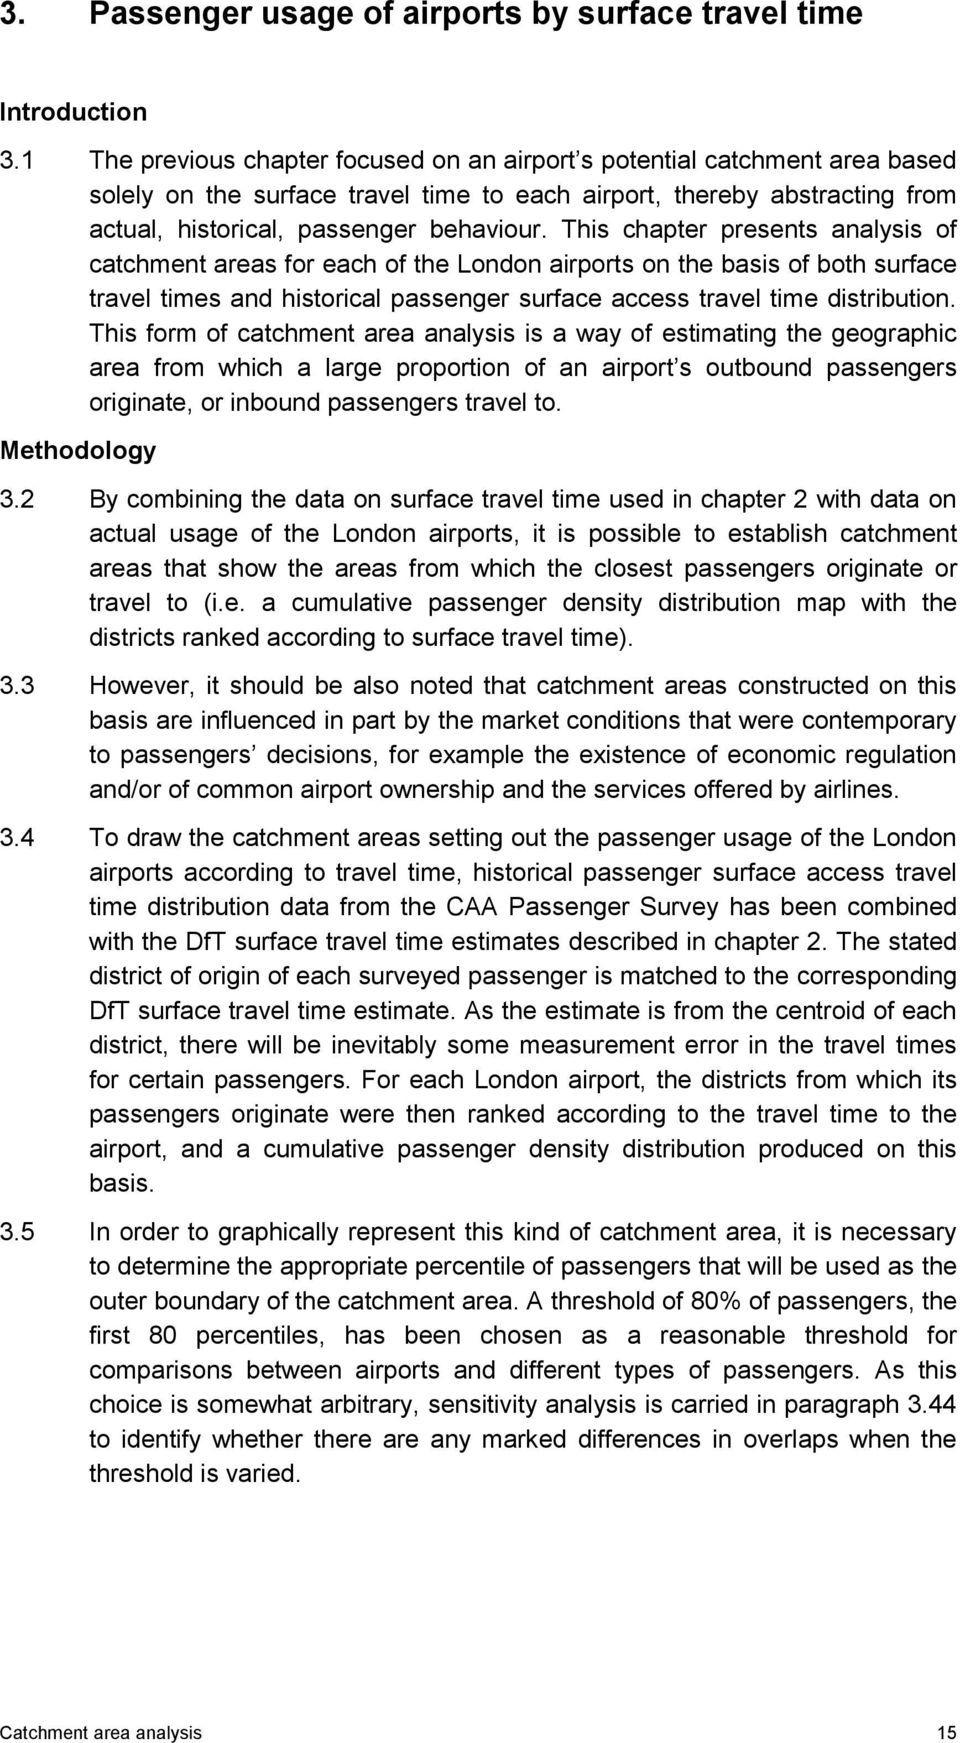 This chapter presents analysis of catchment areas for each of the London airports on the basis of both surface travel times and historical passenger surface access travel time distribution.